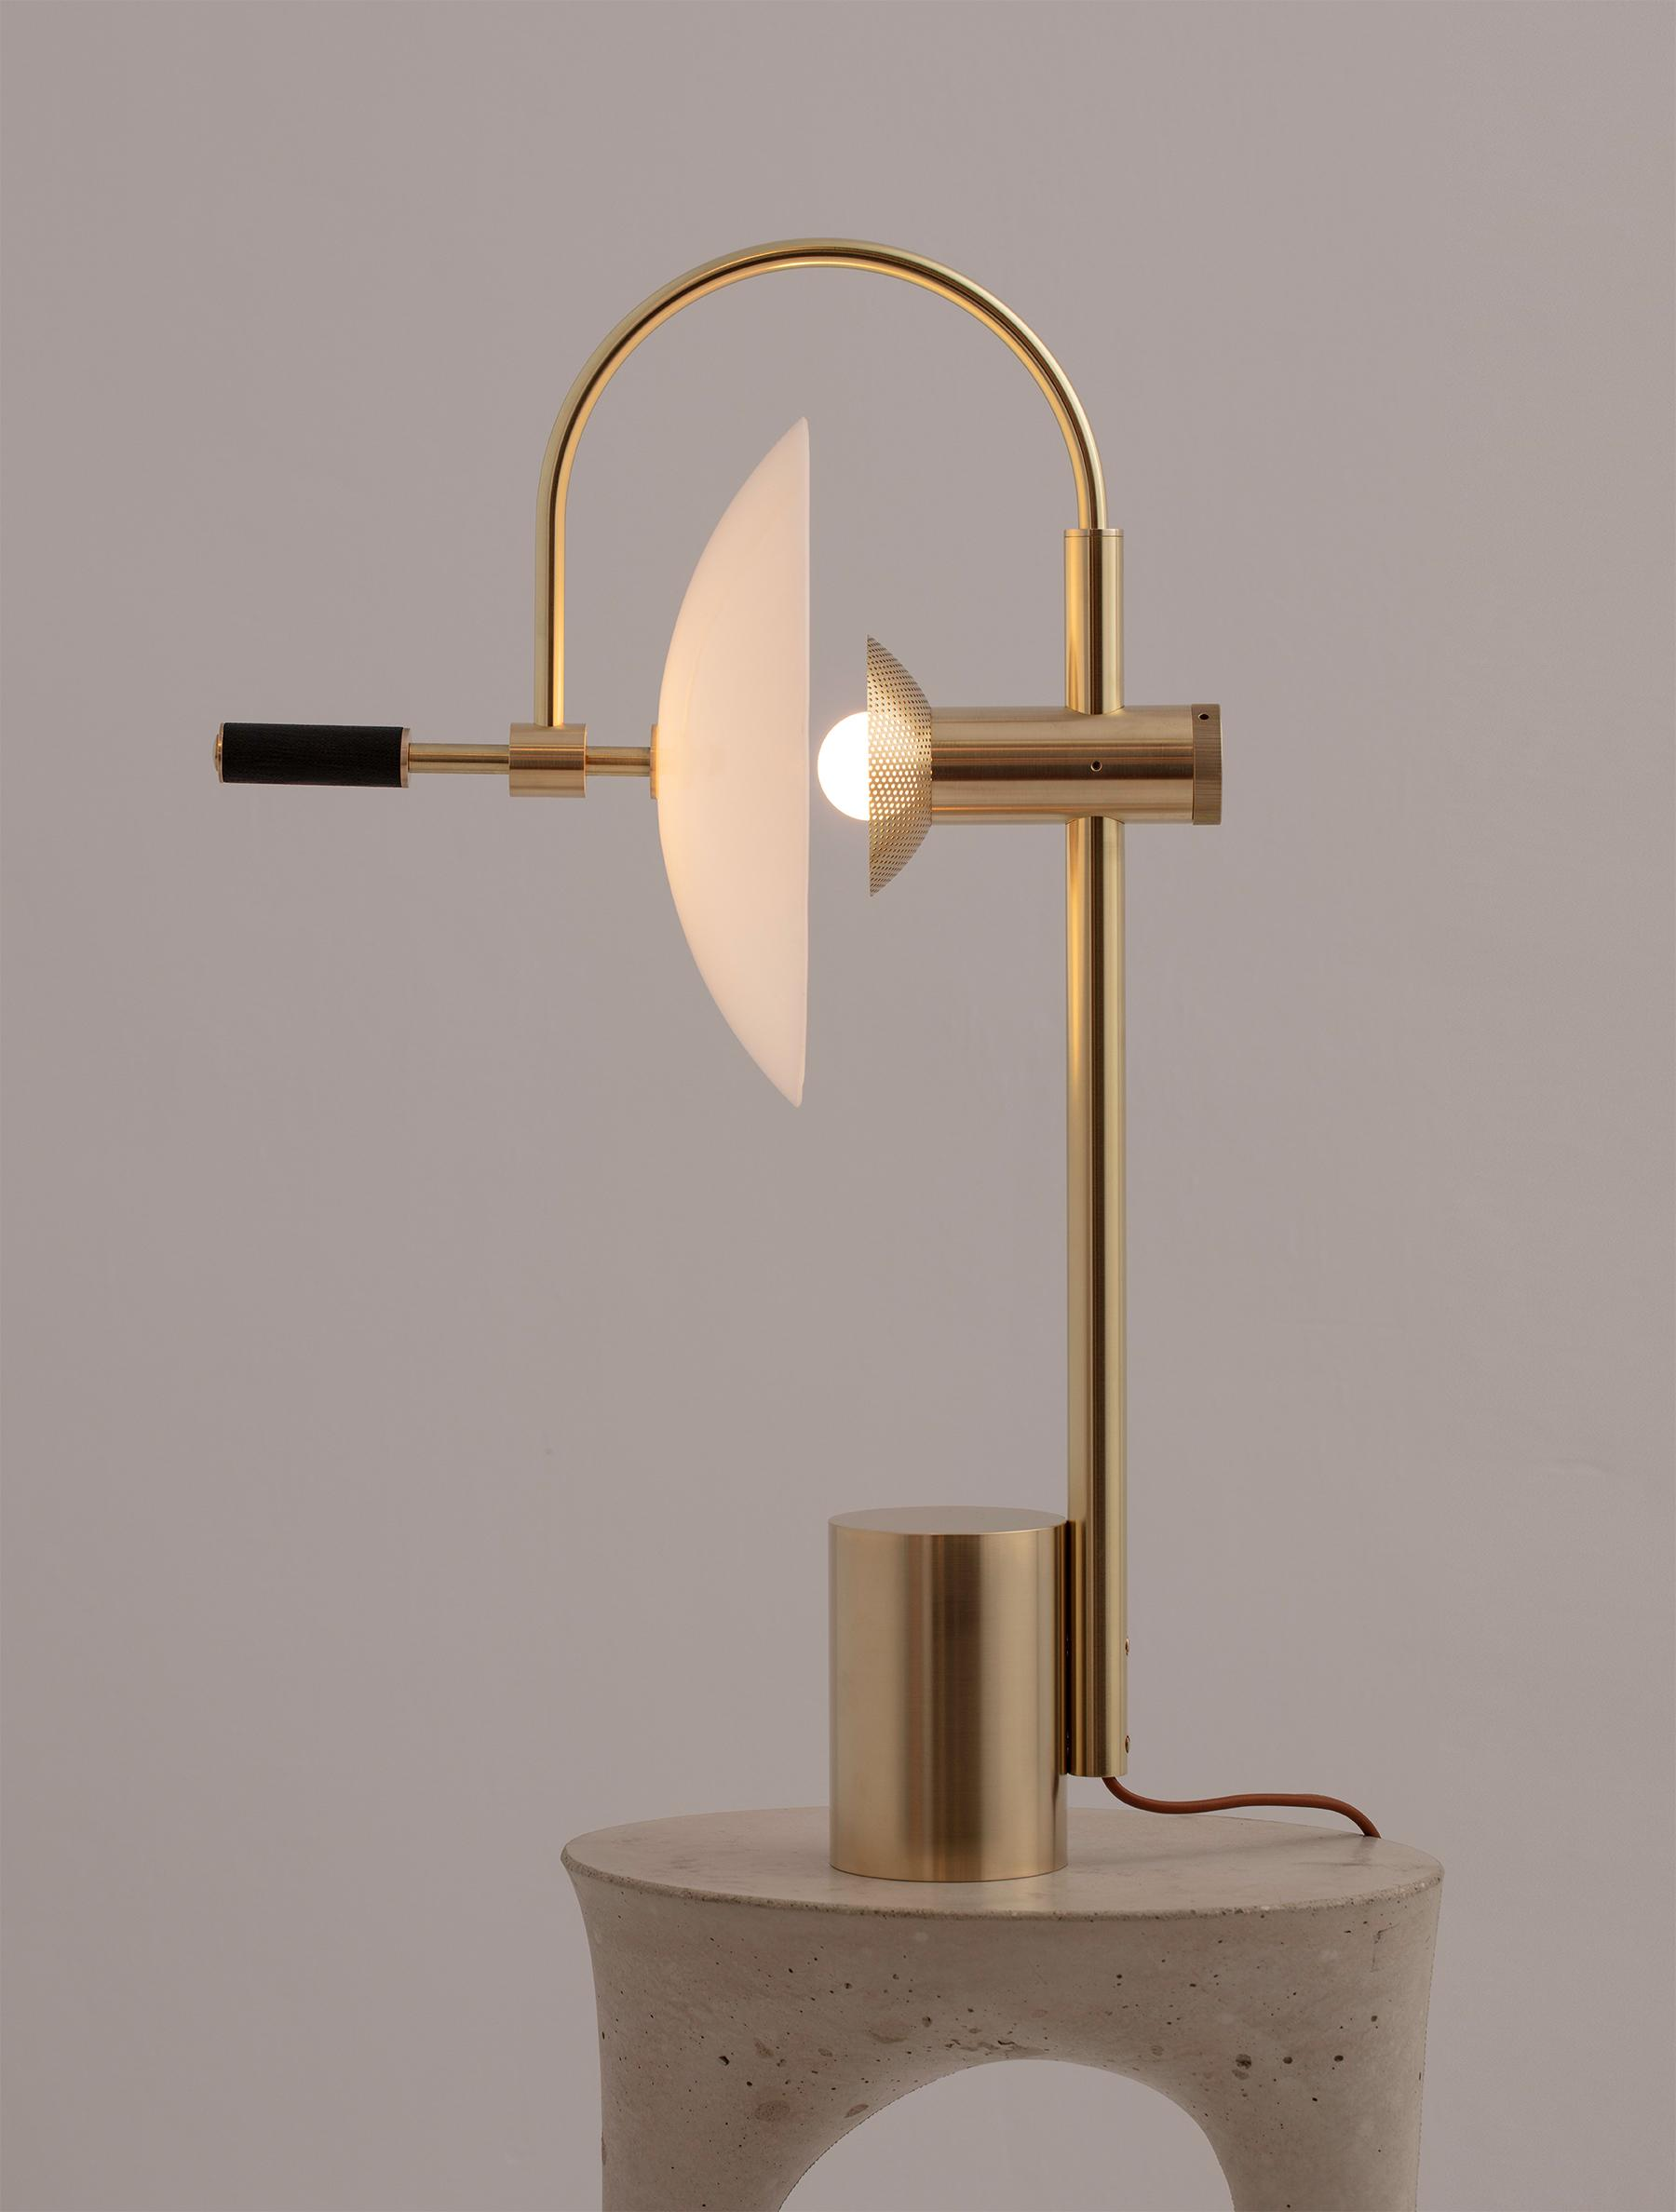 Aperture Table Lamp shown in Brass, Black Walnut, Opal Dome, Tan Leather